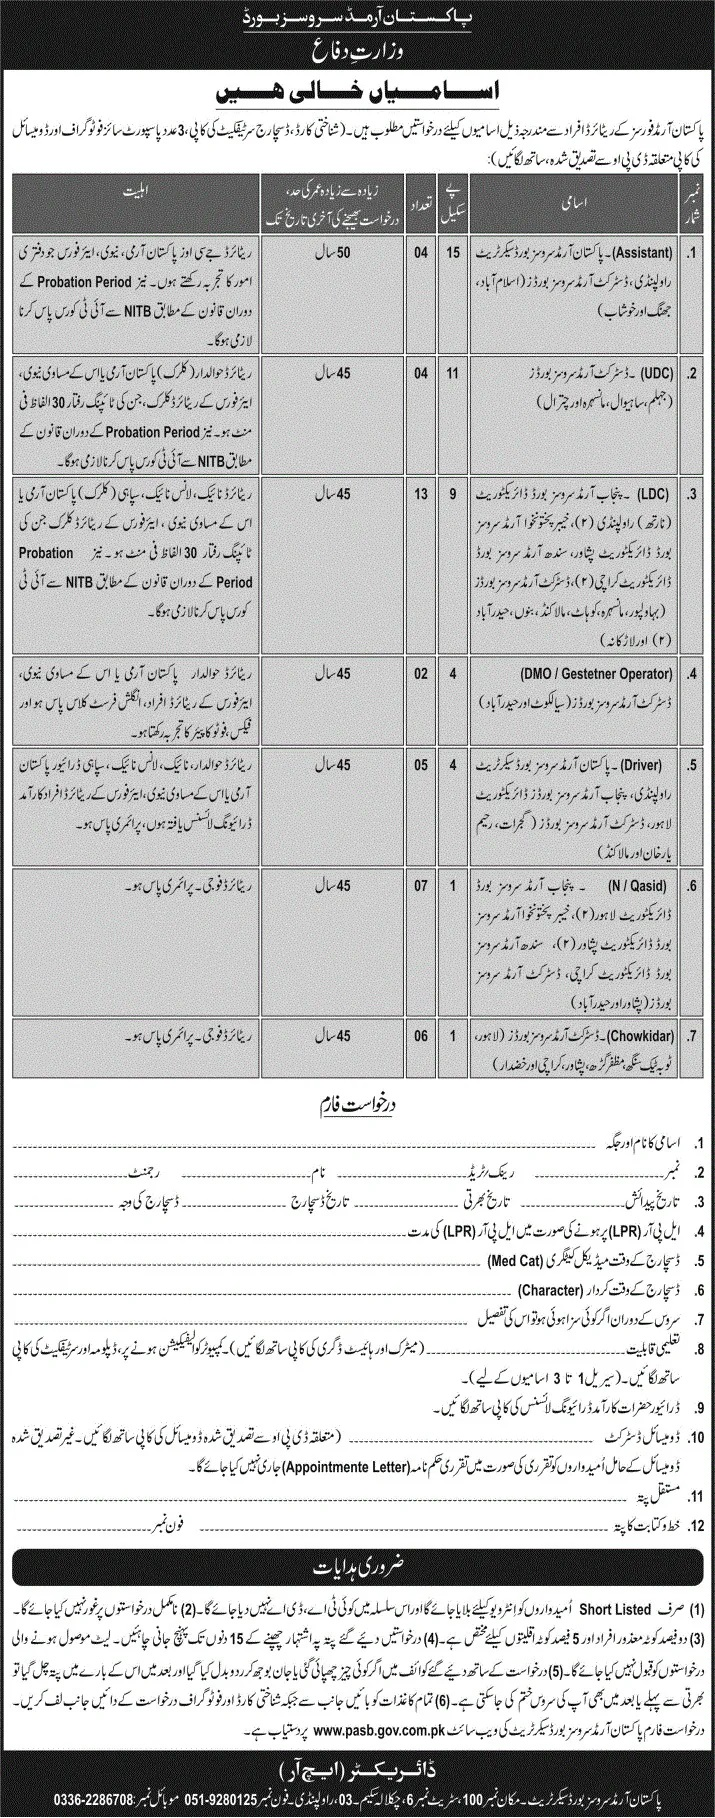 Government Jobs for Army Retired Persons 2021 At PASB